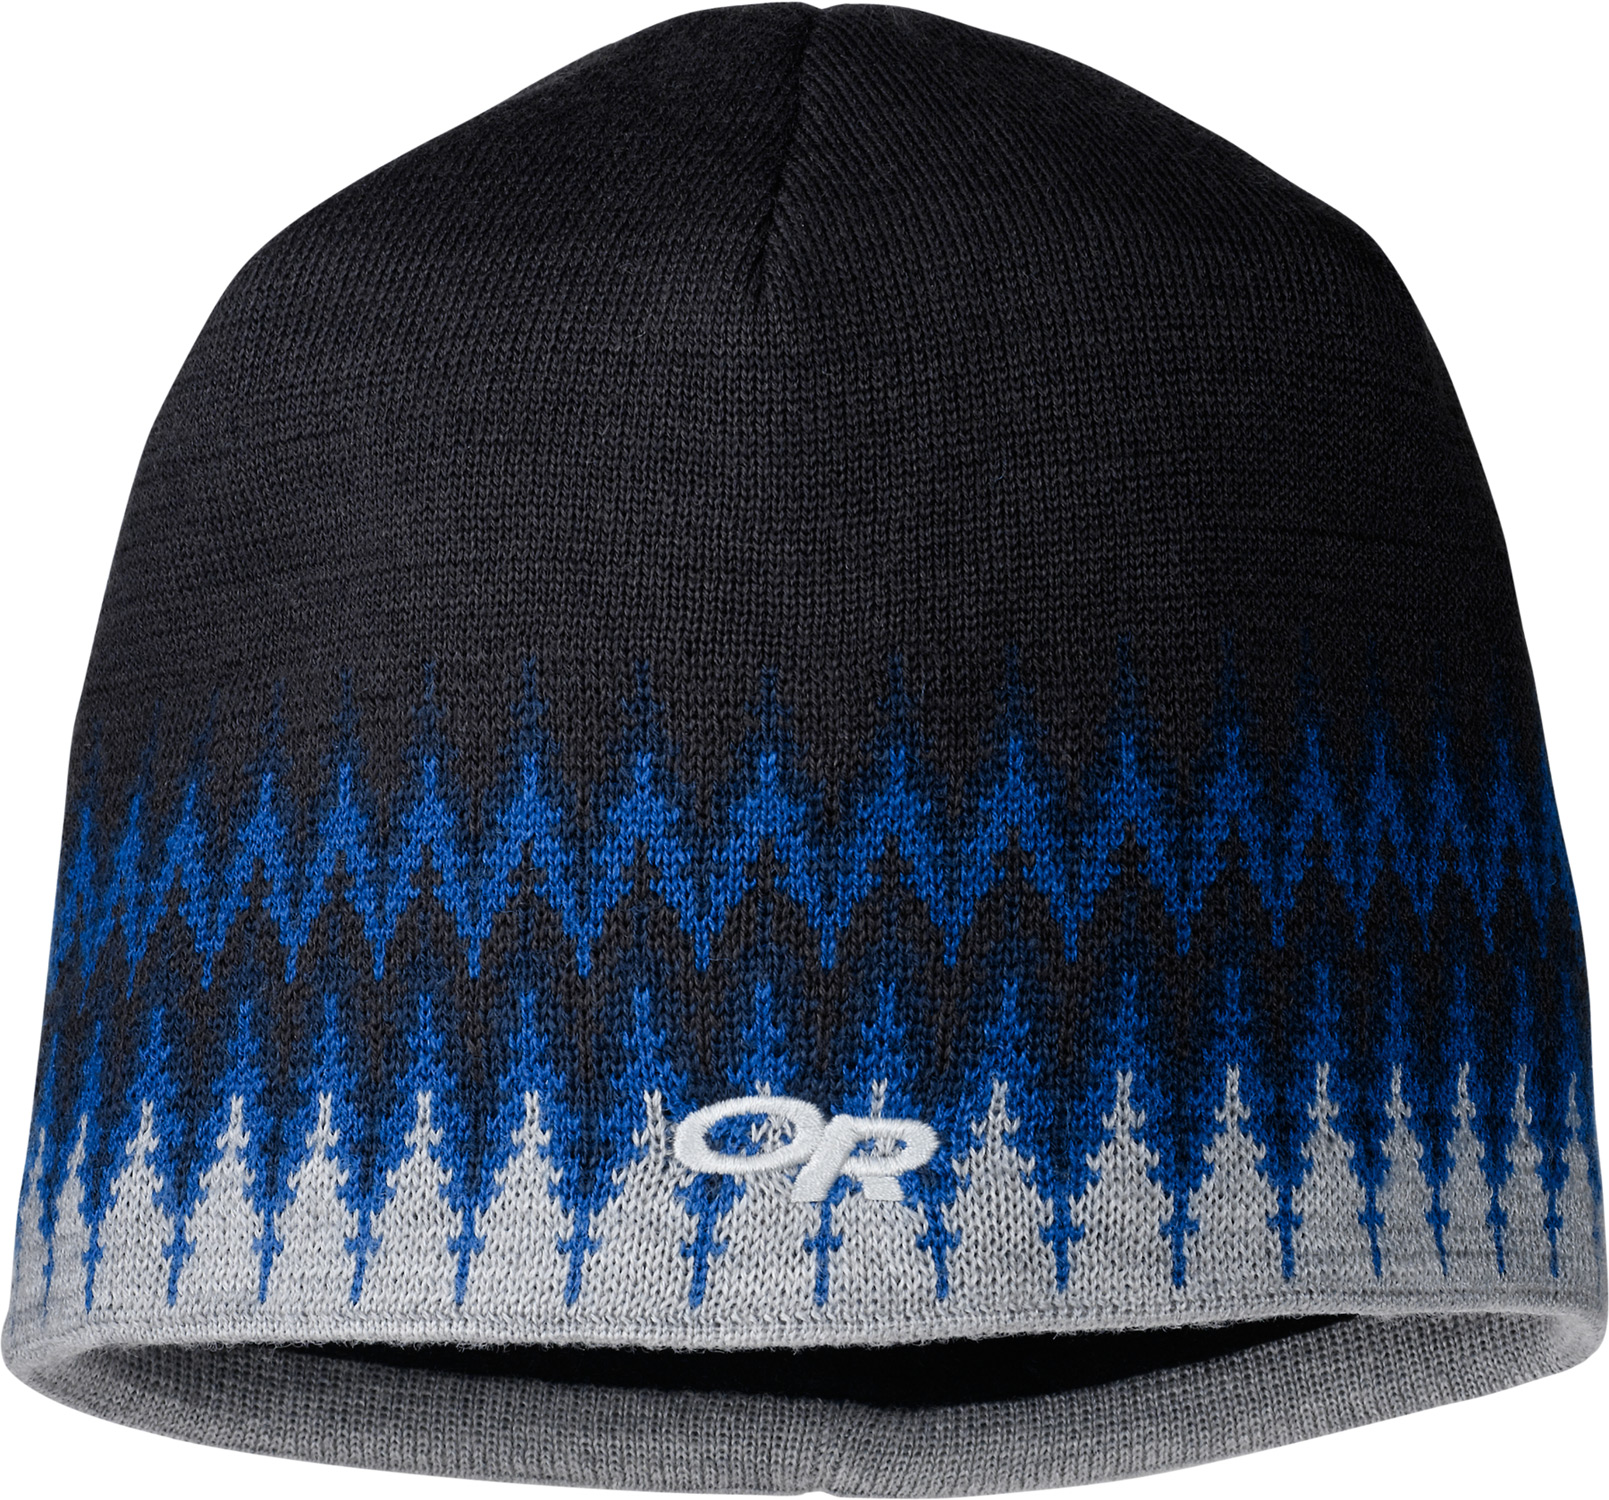 Key Features of the Outdoor Research Treeline Beanie: 70% acrylic/30% wool Micro fleece lining - $22.65